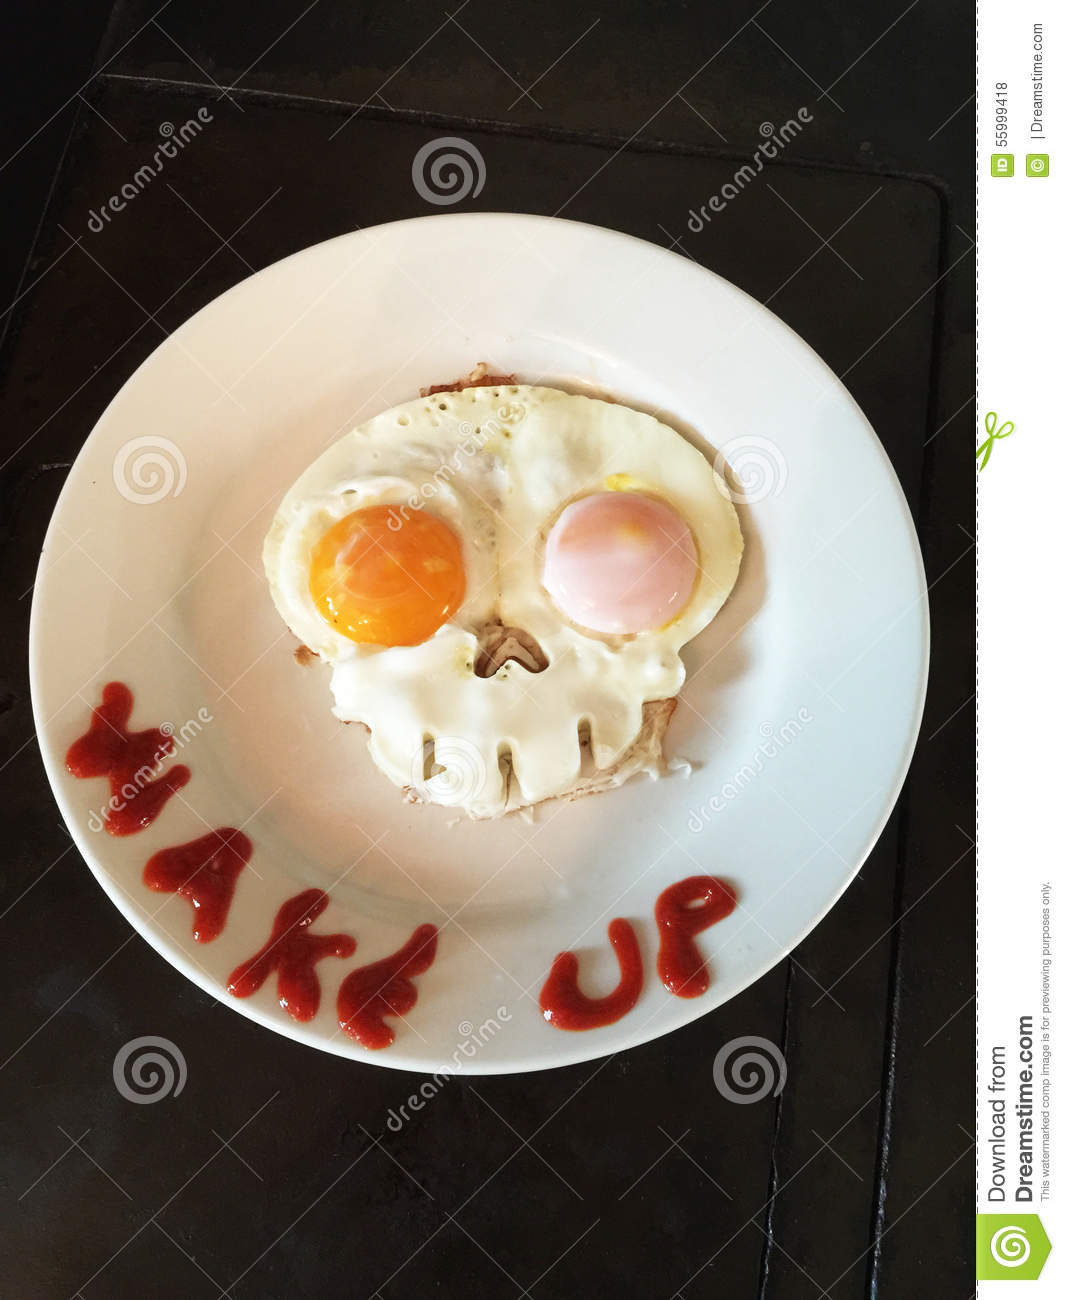 Skull Eggs And Wake Up Stock Photo - Image: 55999418